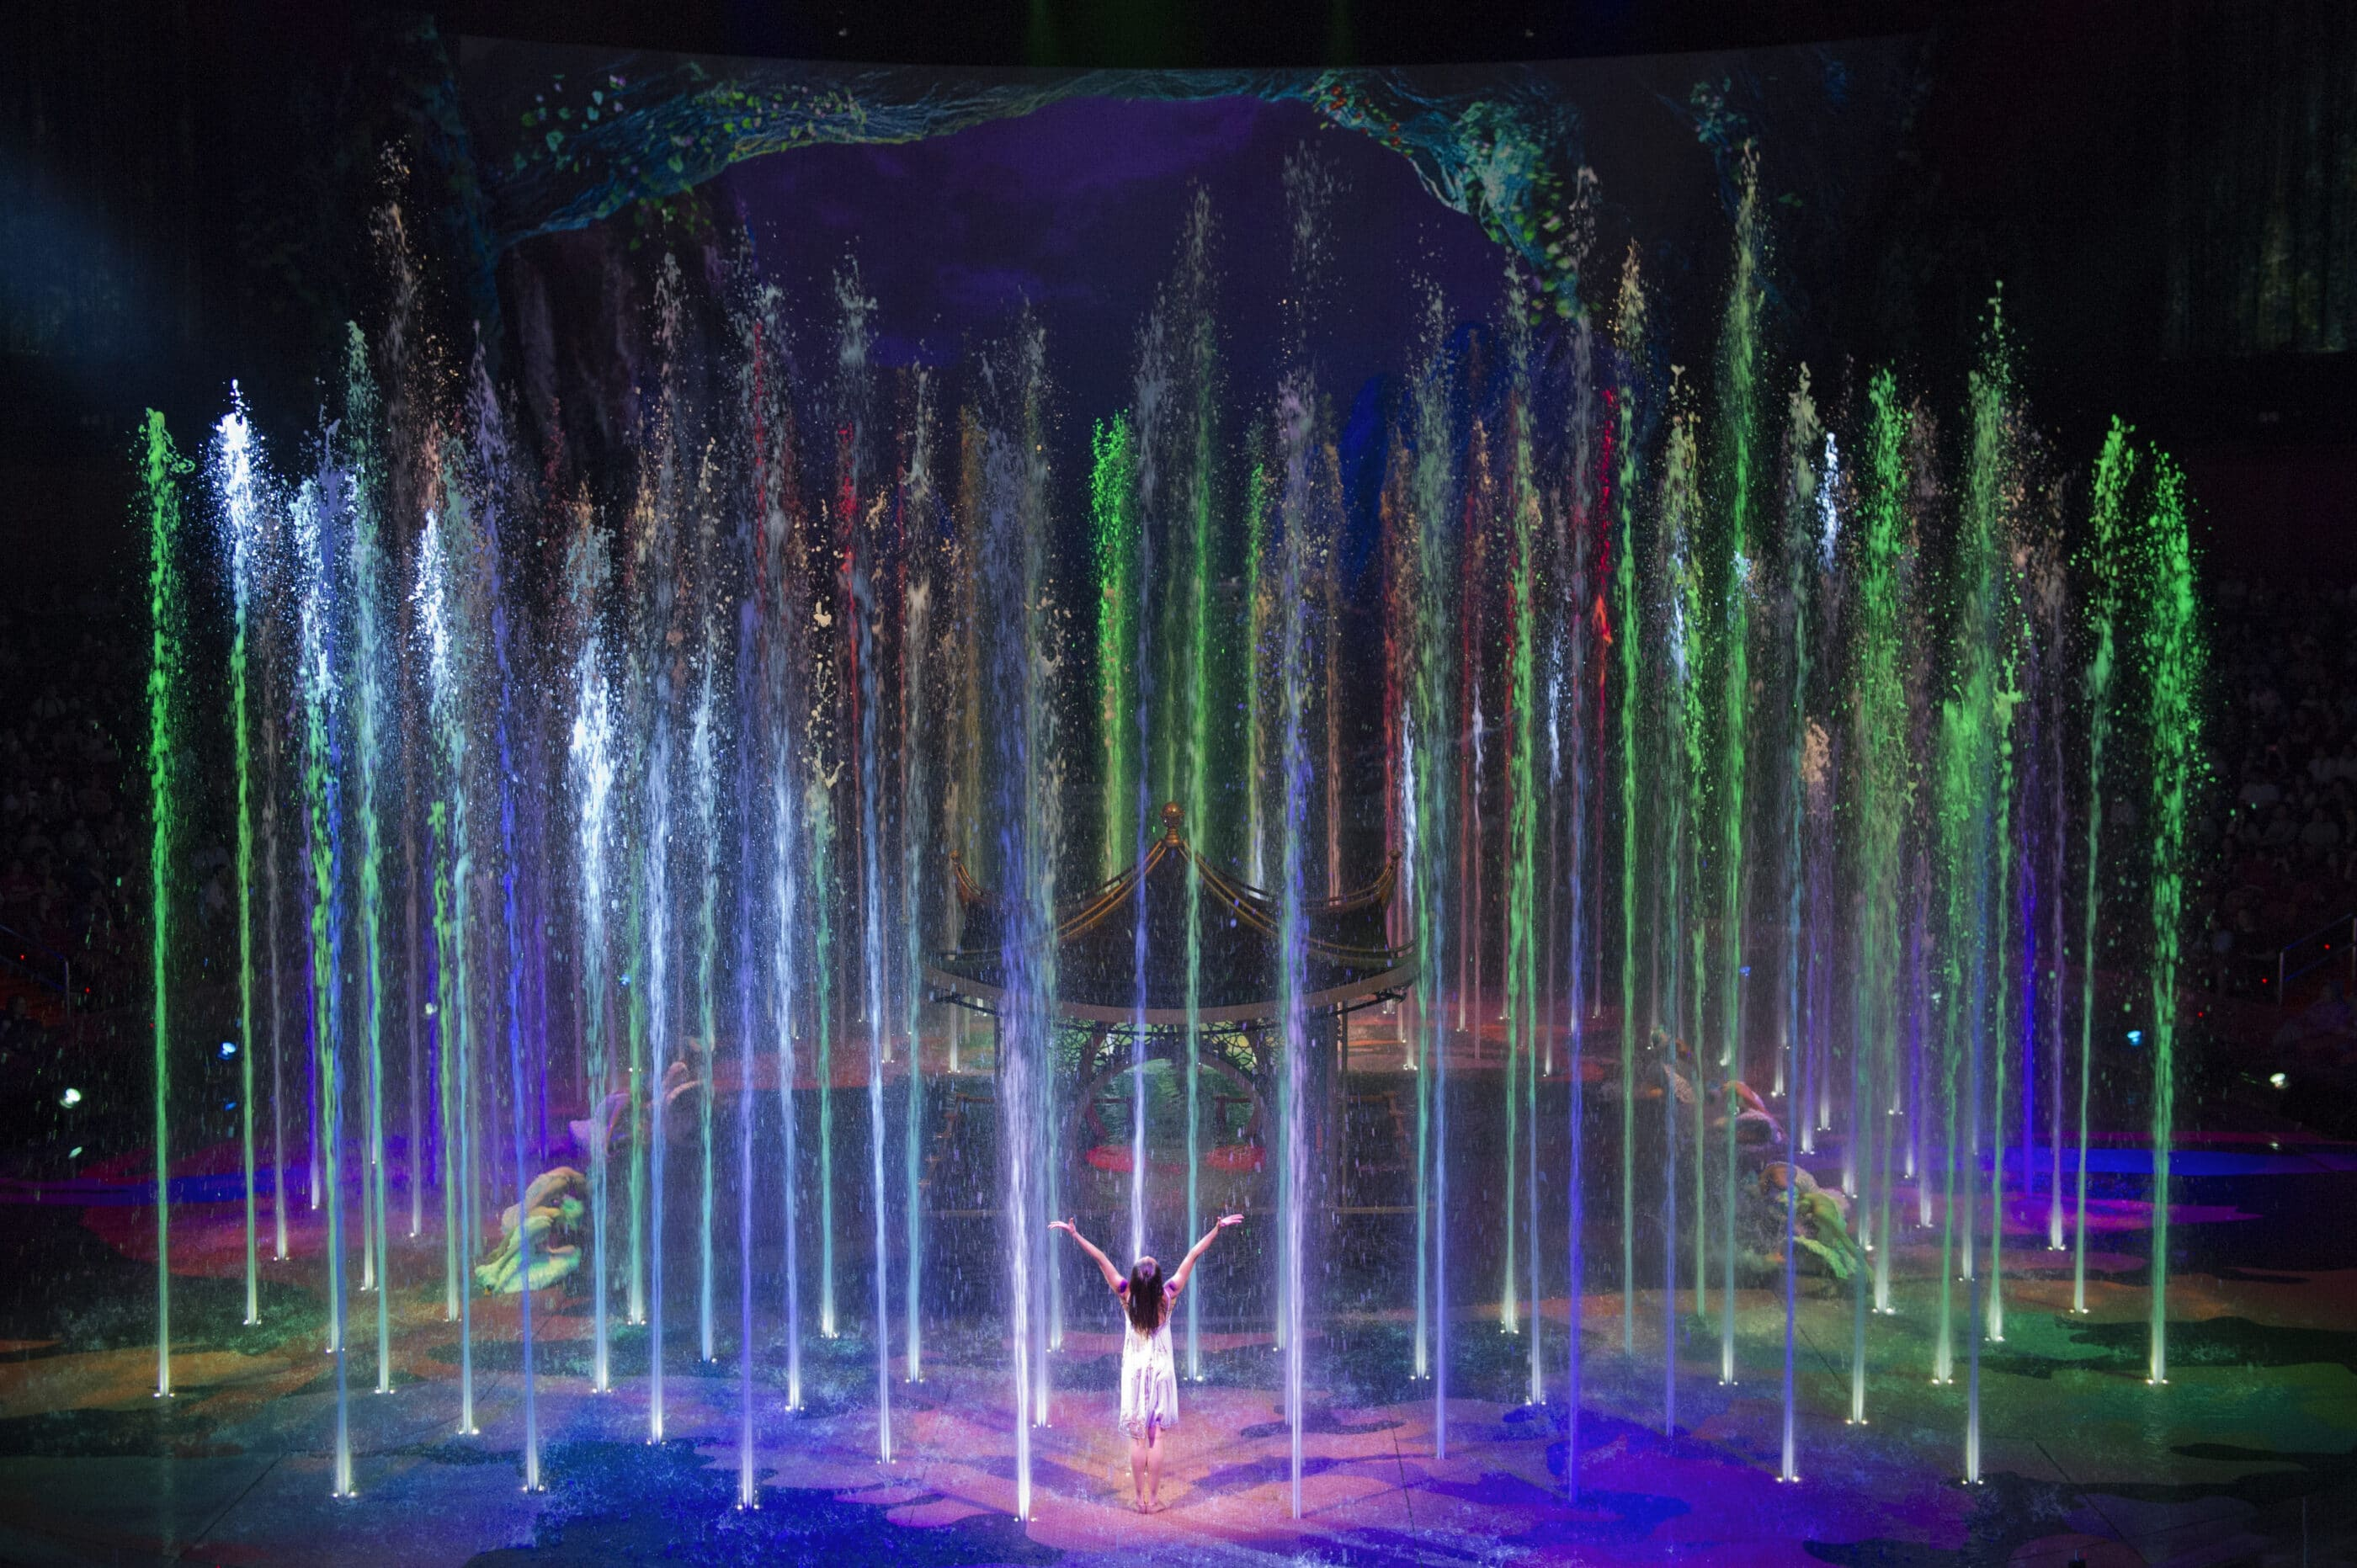 The princess with arms raised appearing to lift water high into the air on stage in front of the pagoda.